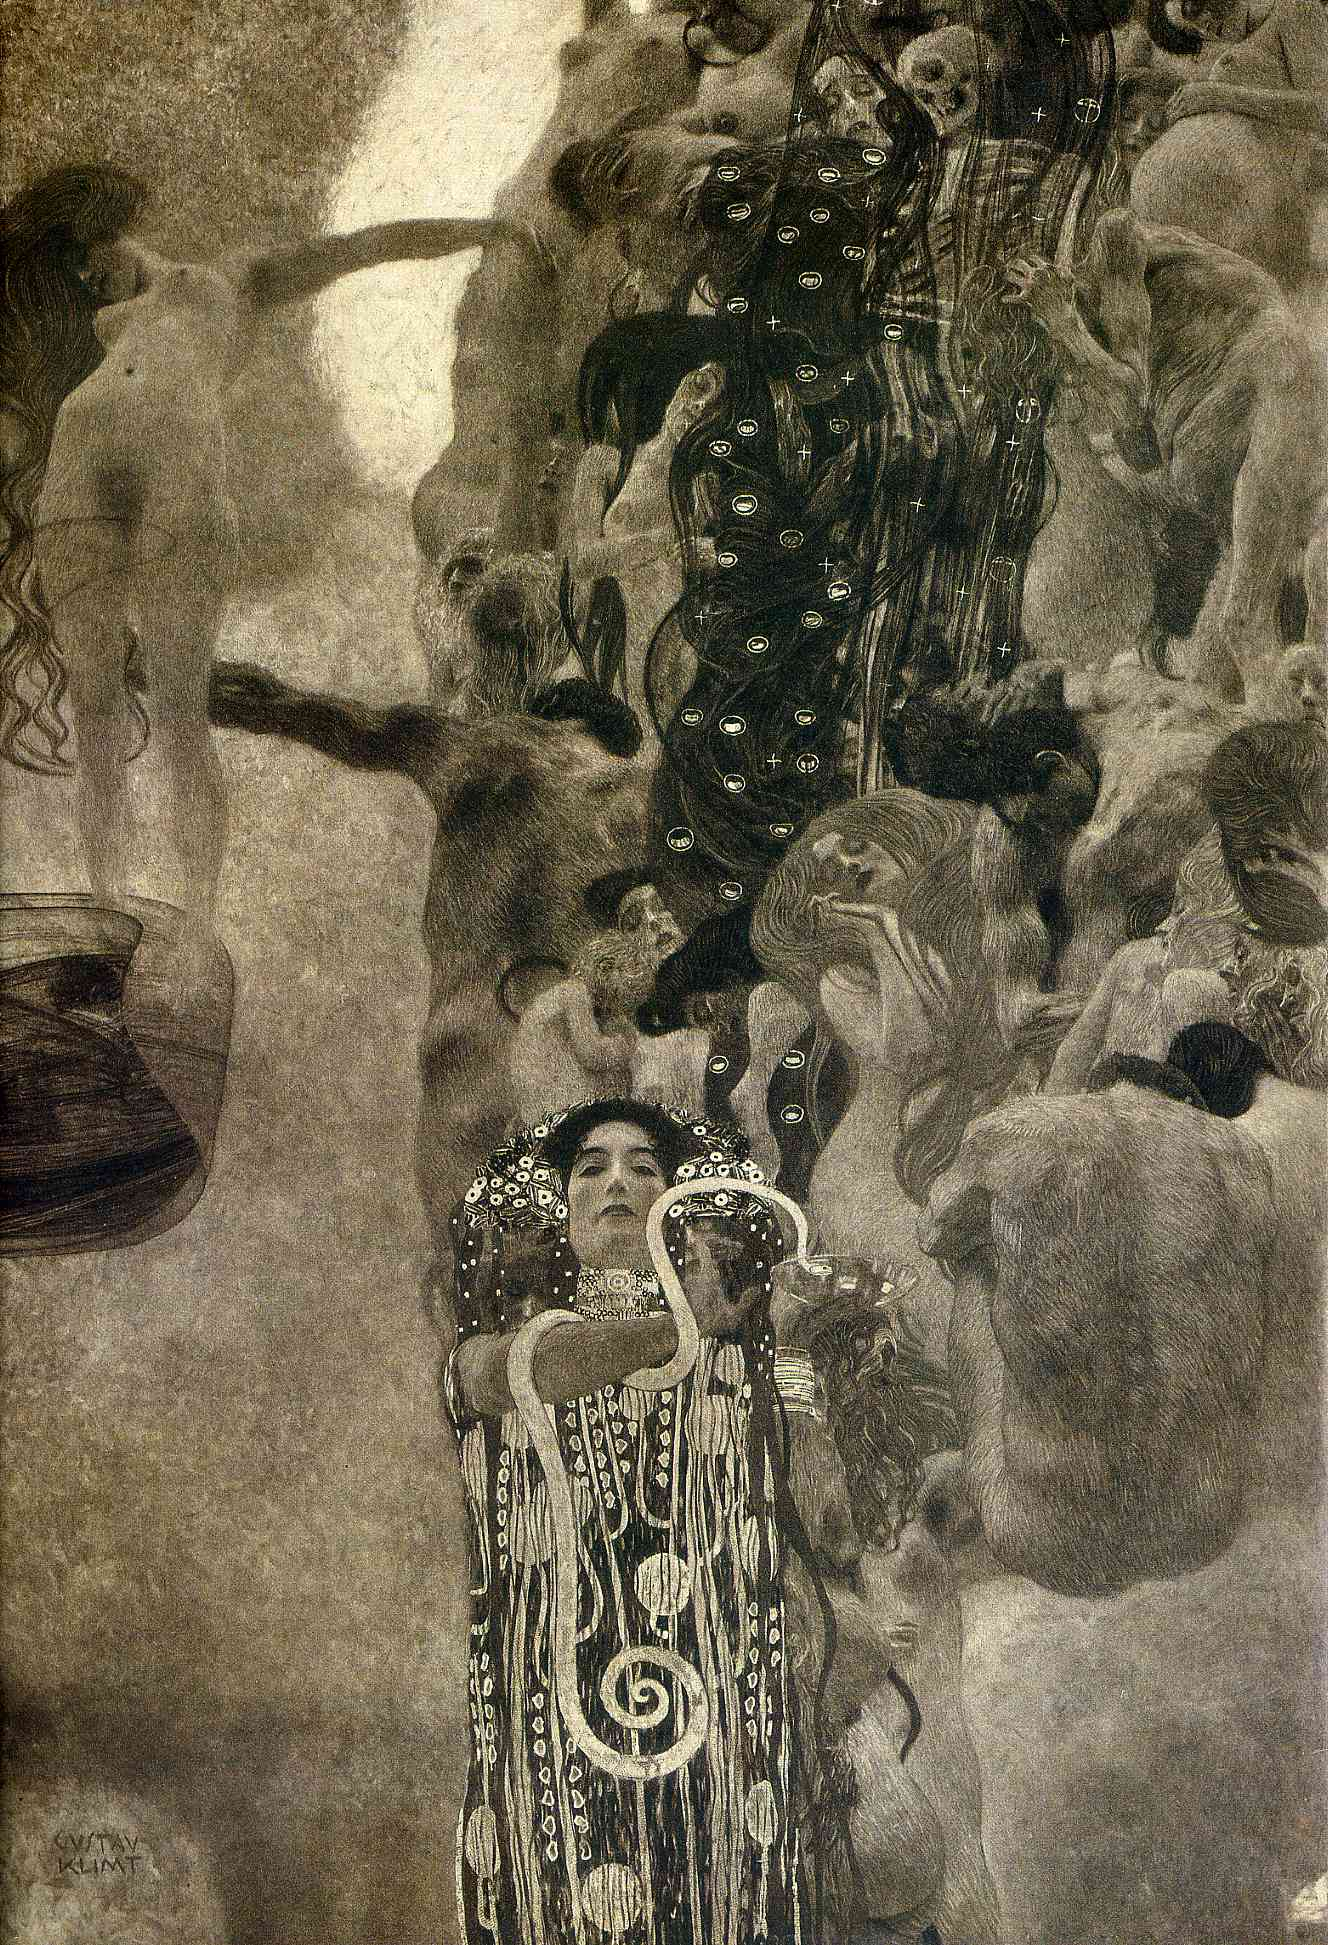 Detail from a black and white photograph of Gustav Klimt's Medicine (c. 1907). The original was destroyed by the Nazis in 1945